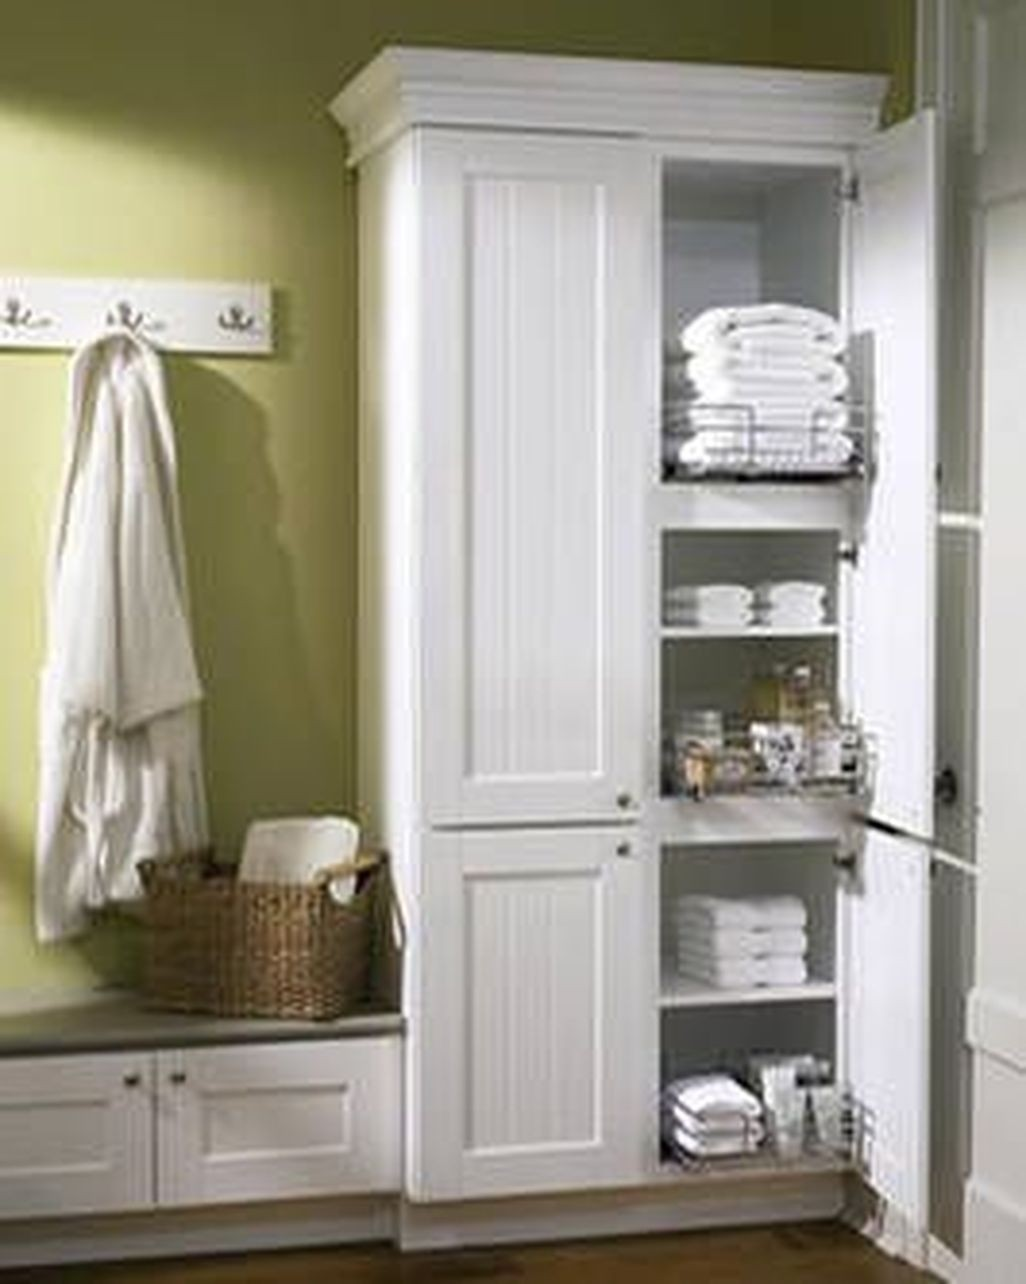 Superbe Linen Closet Organizing The Bathroom Vanity Medicine Cabinet Video